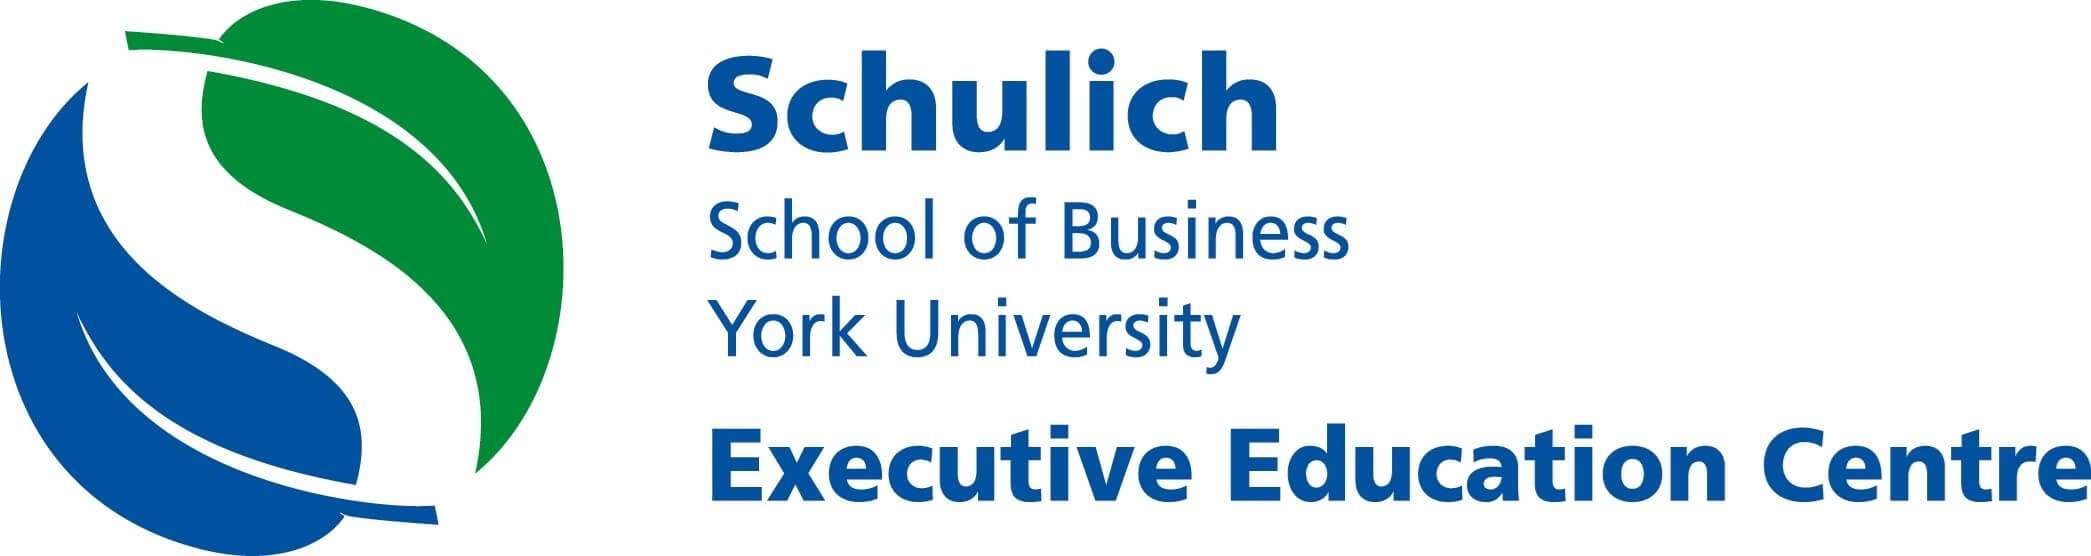 Masters certificate in project management school image 1betcityfo Gallery